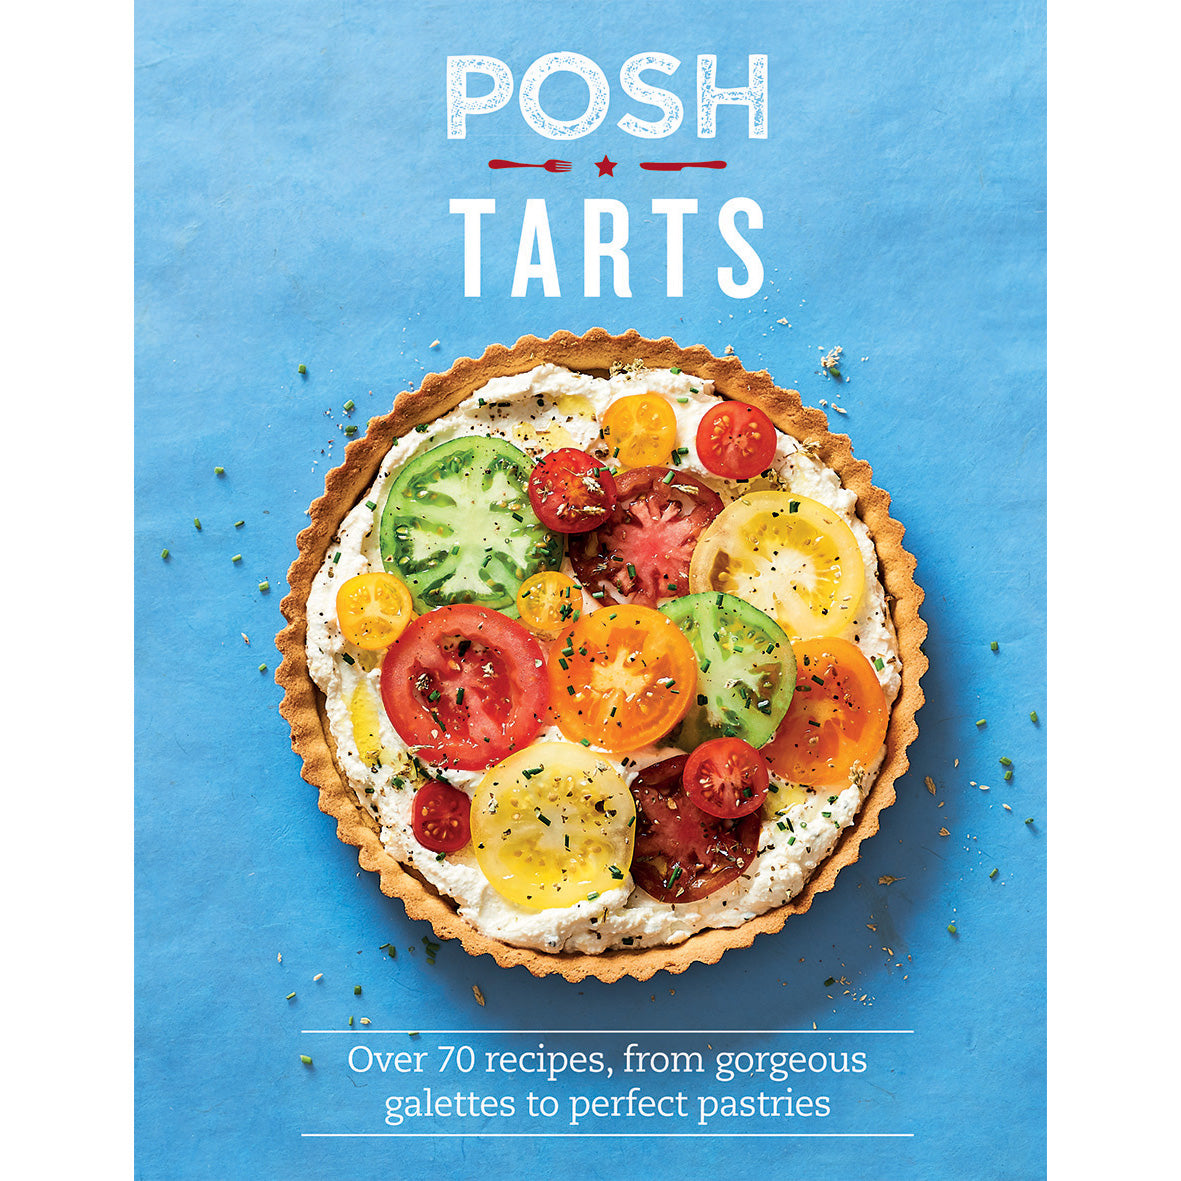 Posh Tarts: Over 70 Recipes from Gorgeous Galettes to Perfect Pastries